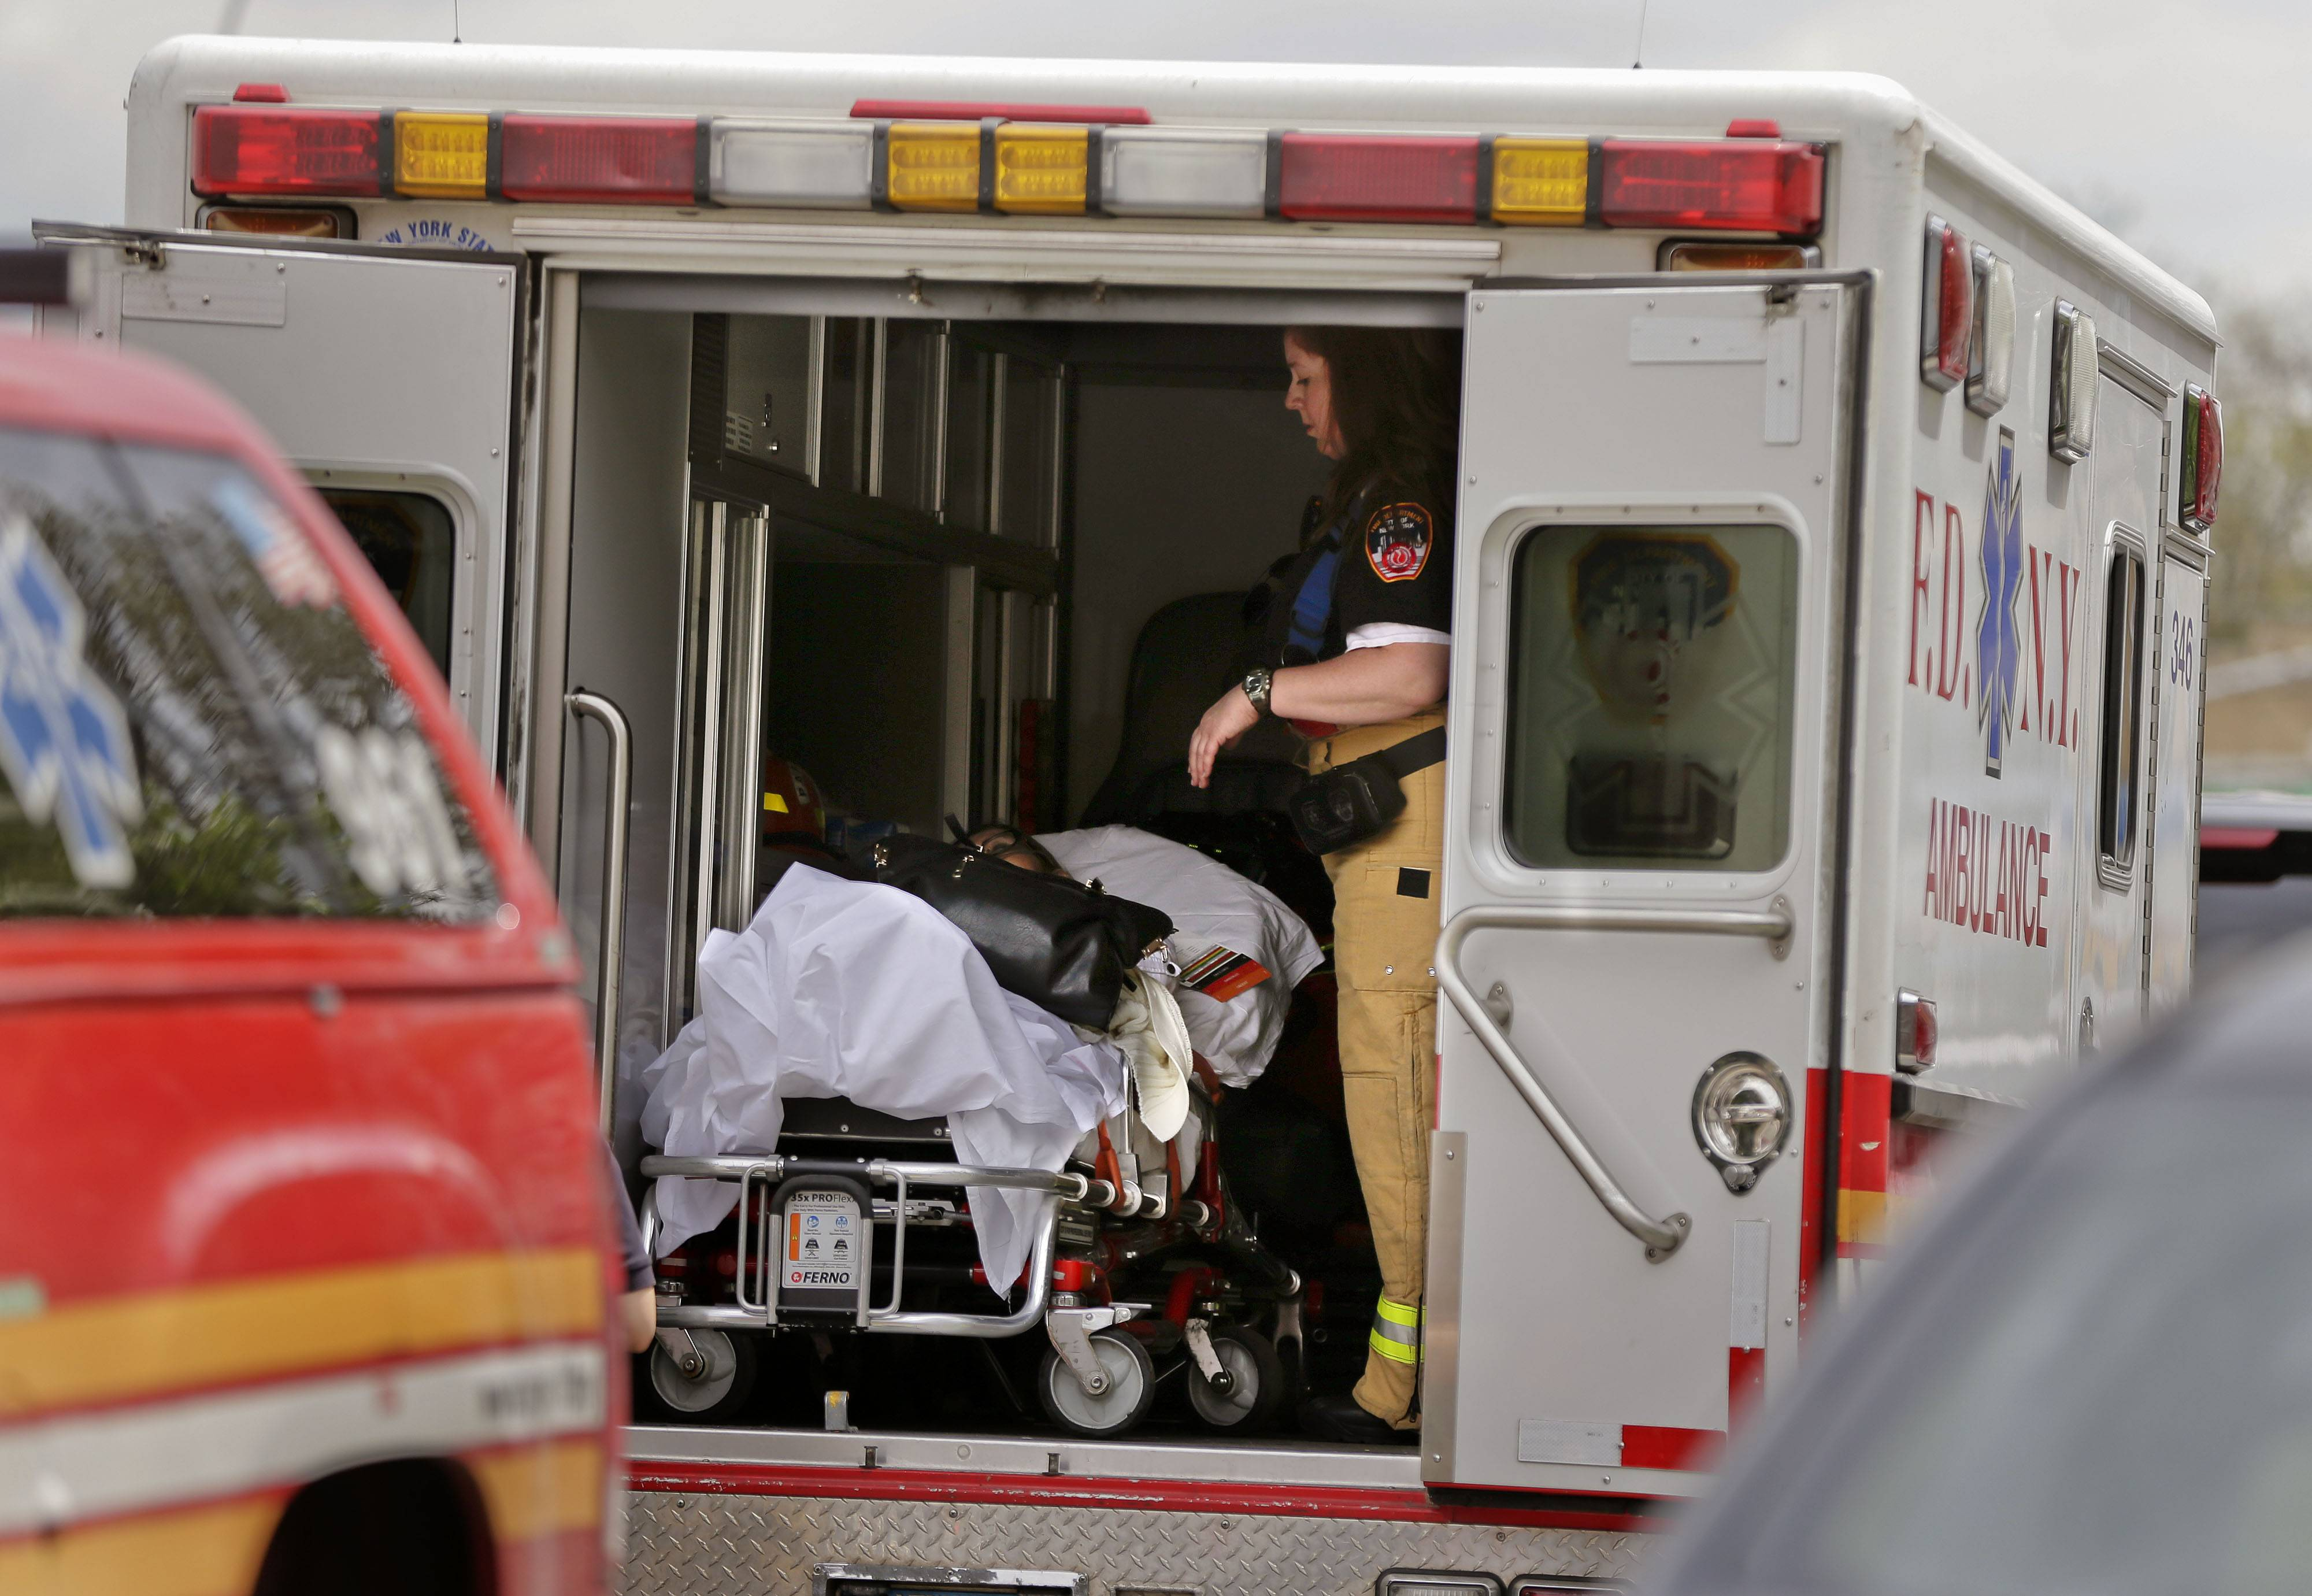 A New York City fire department EMT prepares to transport a woman who was evacuated from a subway train after it derailed Friday in the Queens borough of New York.